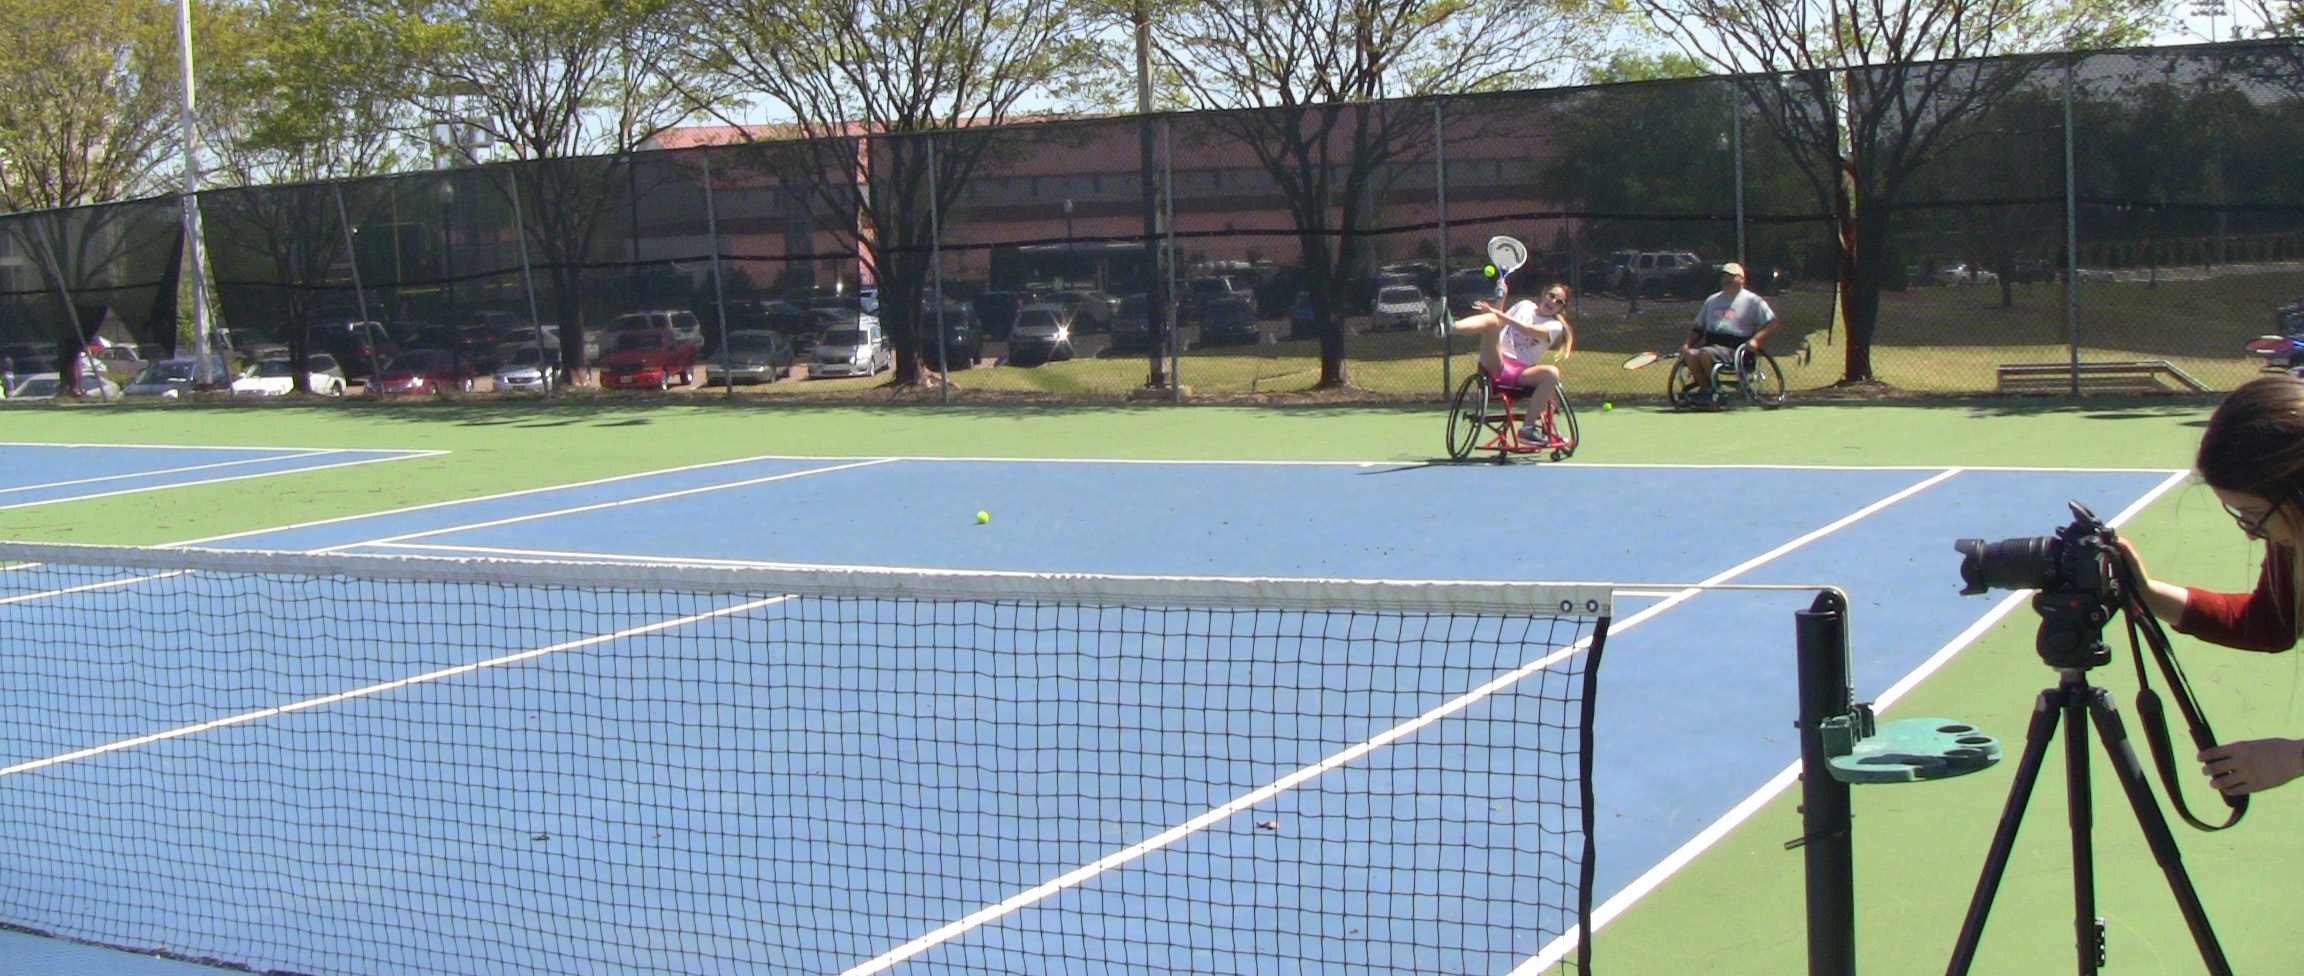 2019 Wheelchair Tennis Picture 2